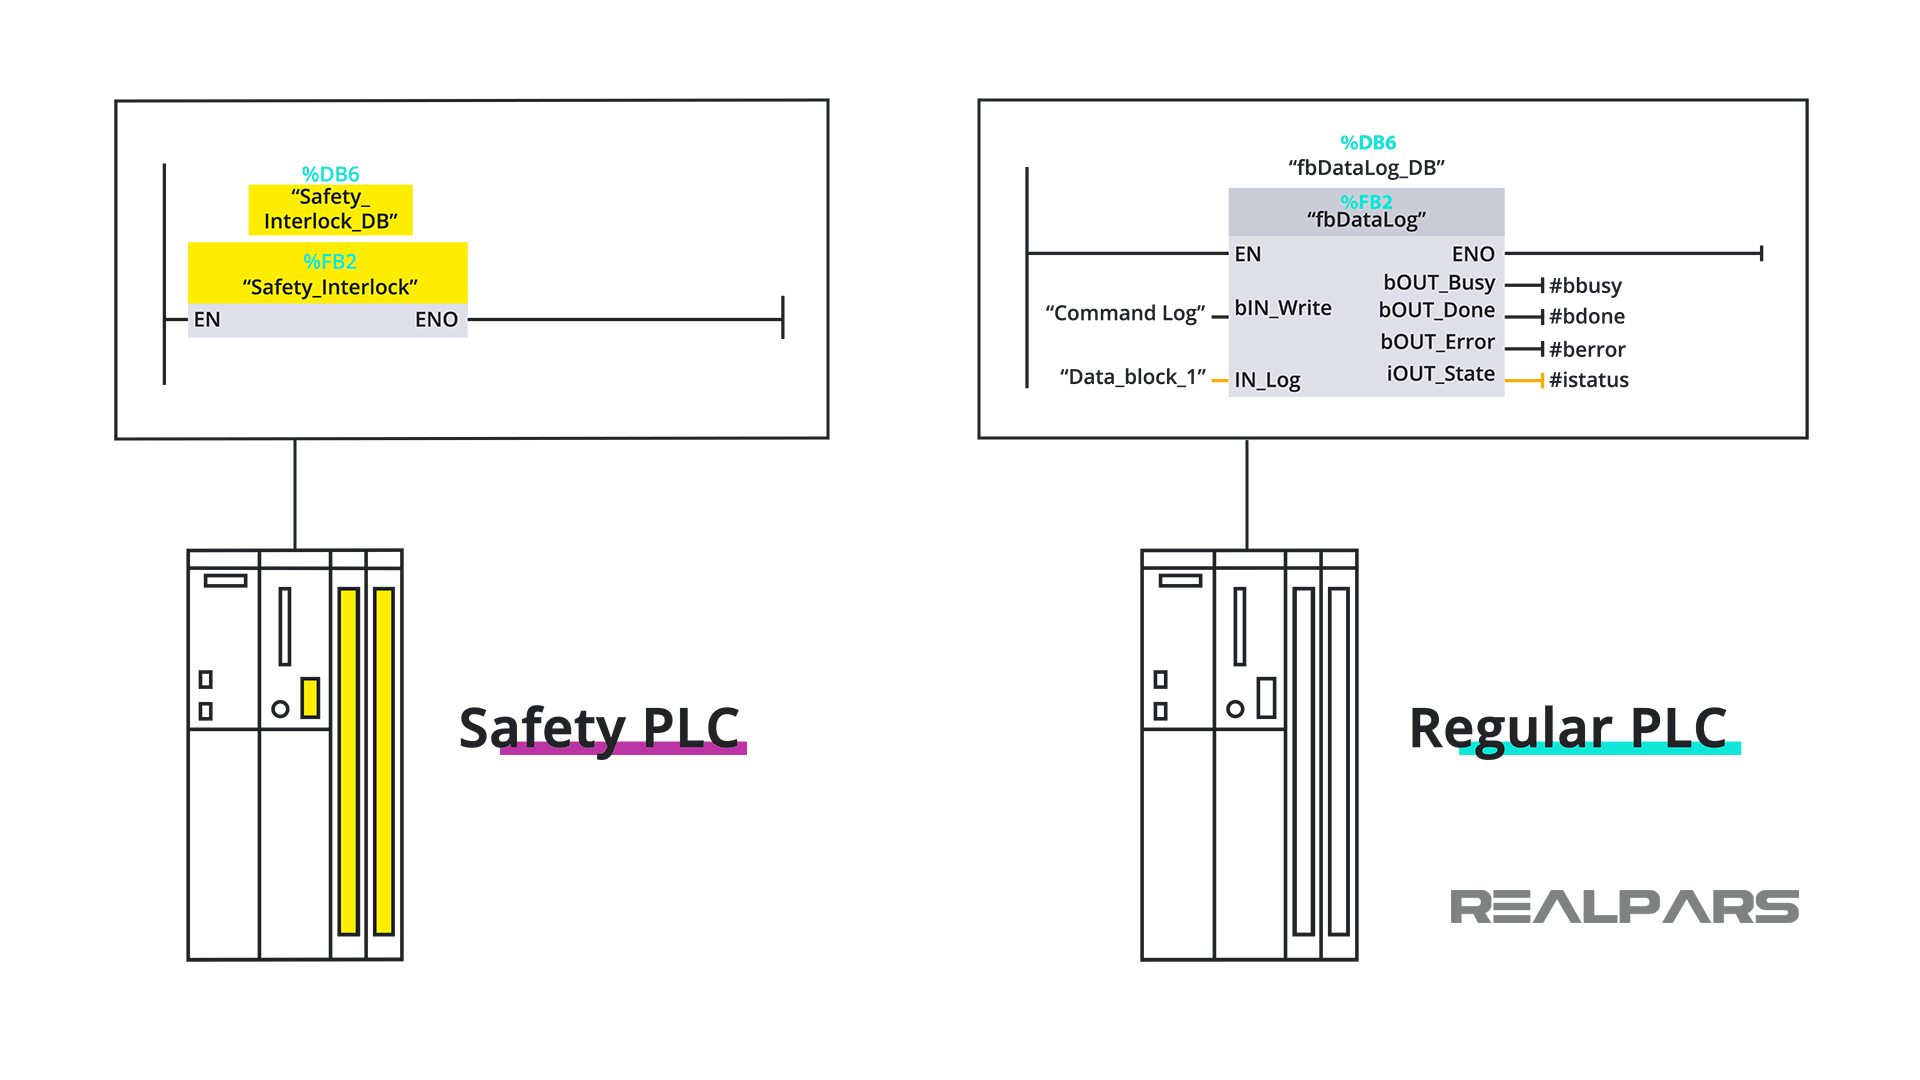 Safety PLC and Regular PLC